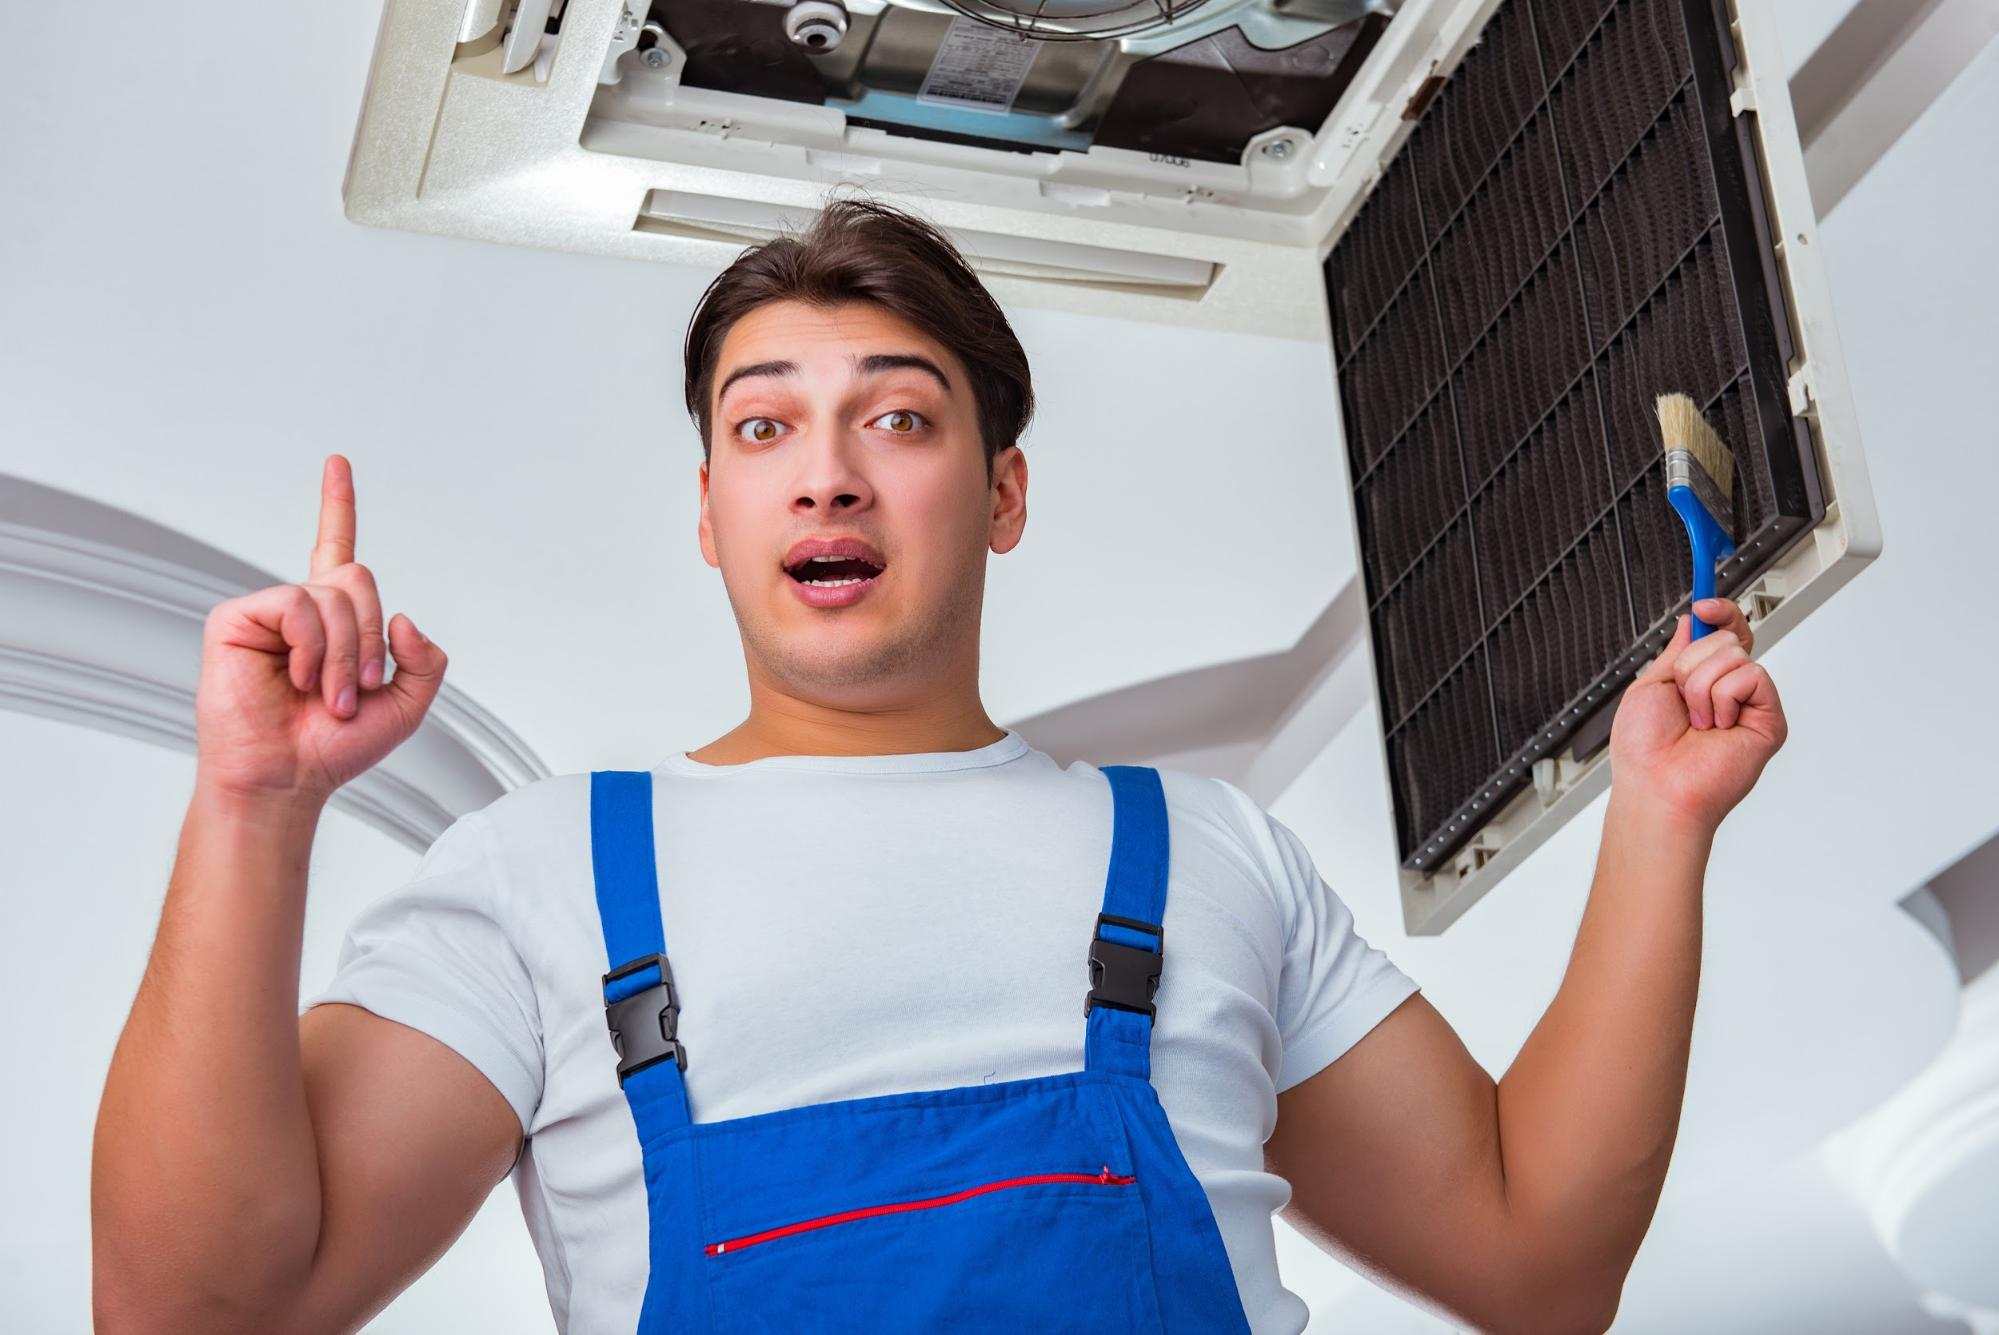 Don't even think about it – hire out your AC installation if you don't have time to read an owner's manual